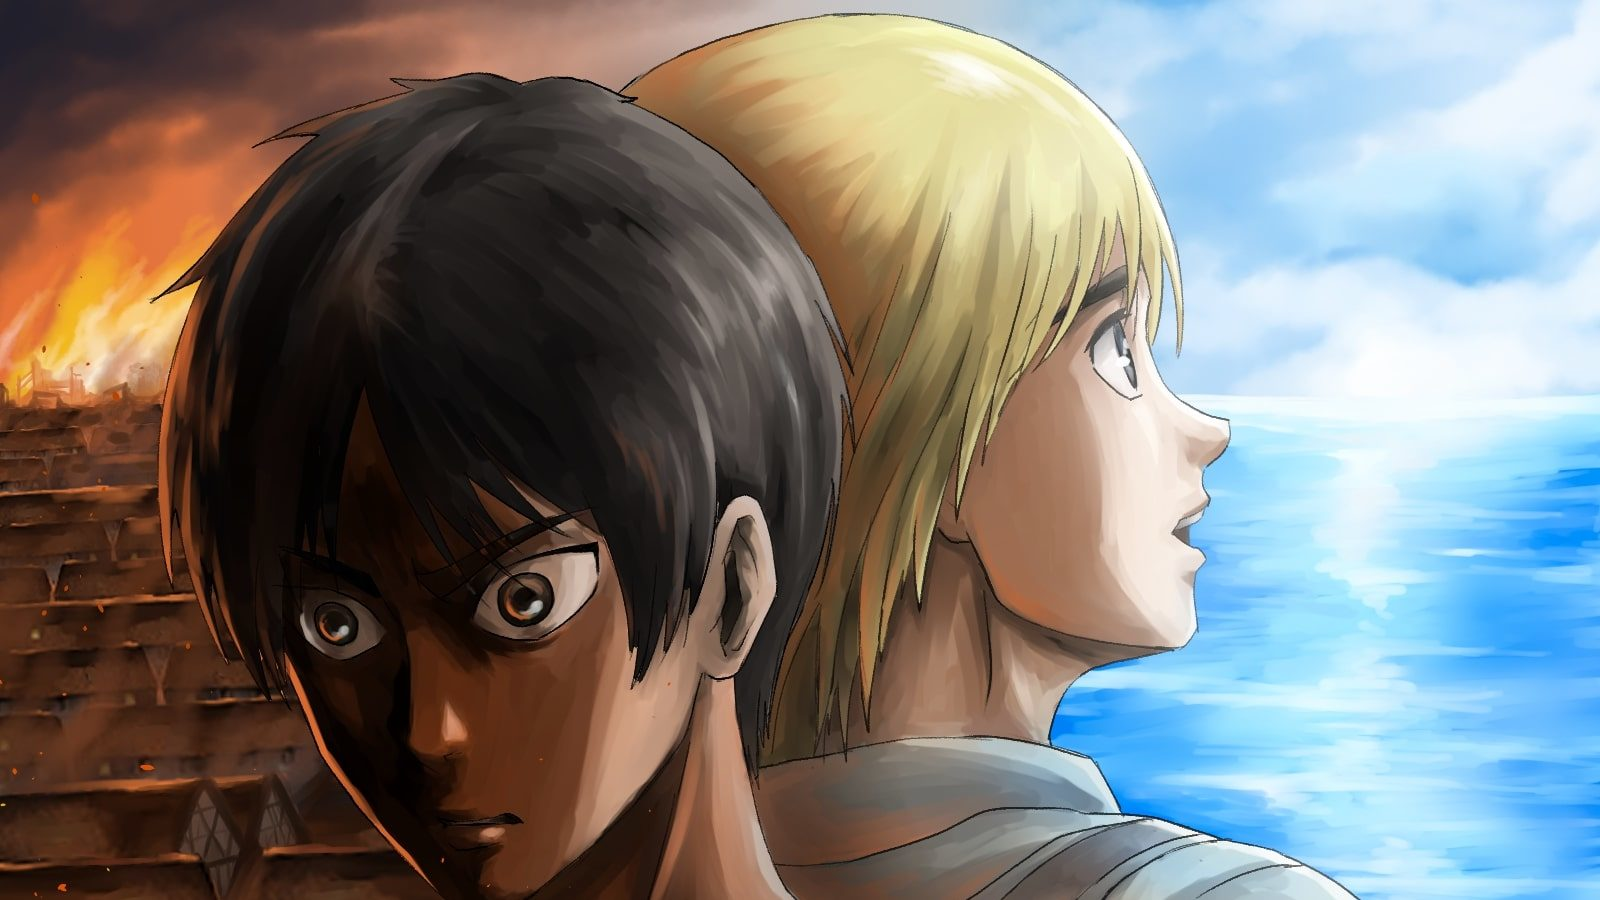 How to Read Online the Official Attack on Titan Chapter 137 Legally?